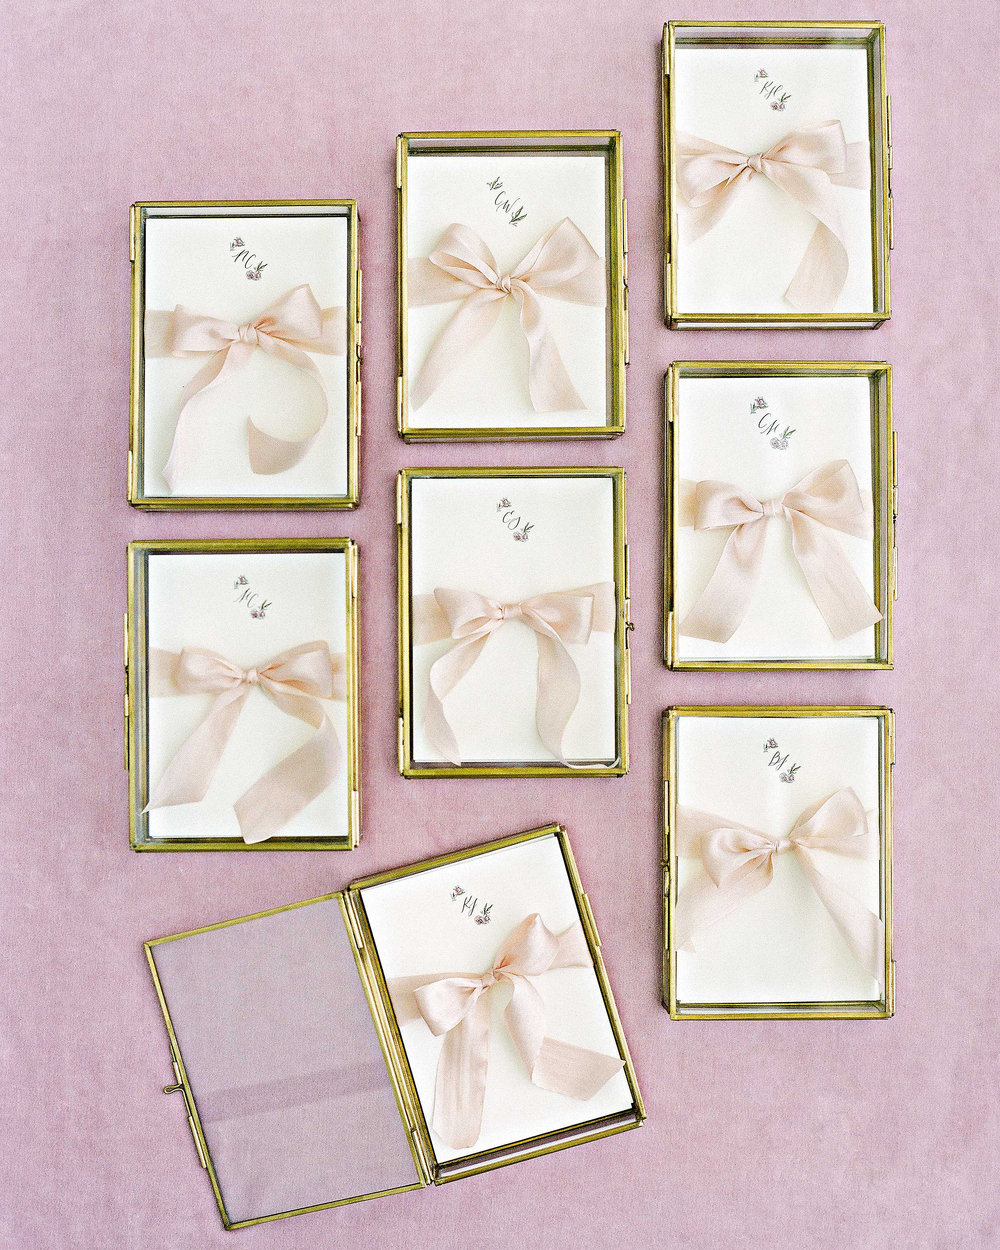 rebecca-clay-wedding-north-carolina-bridesmaid-gifts-103228792.jpg